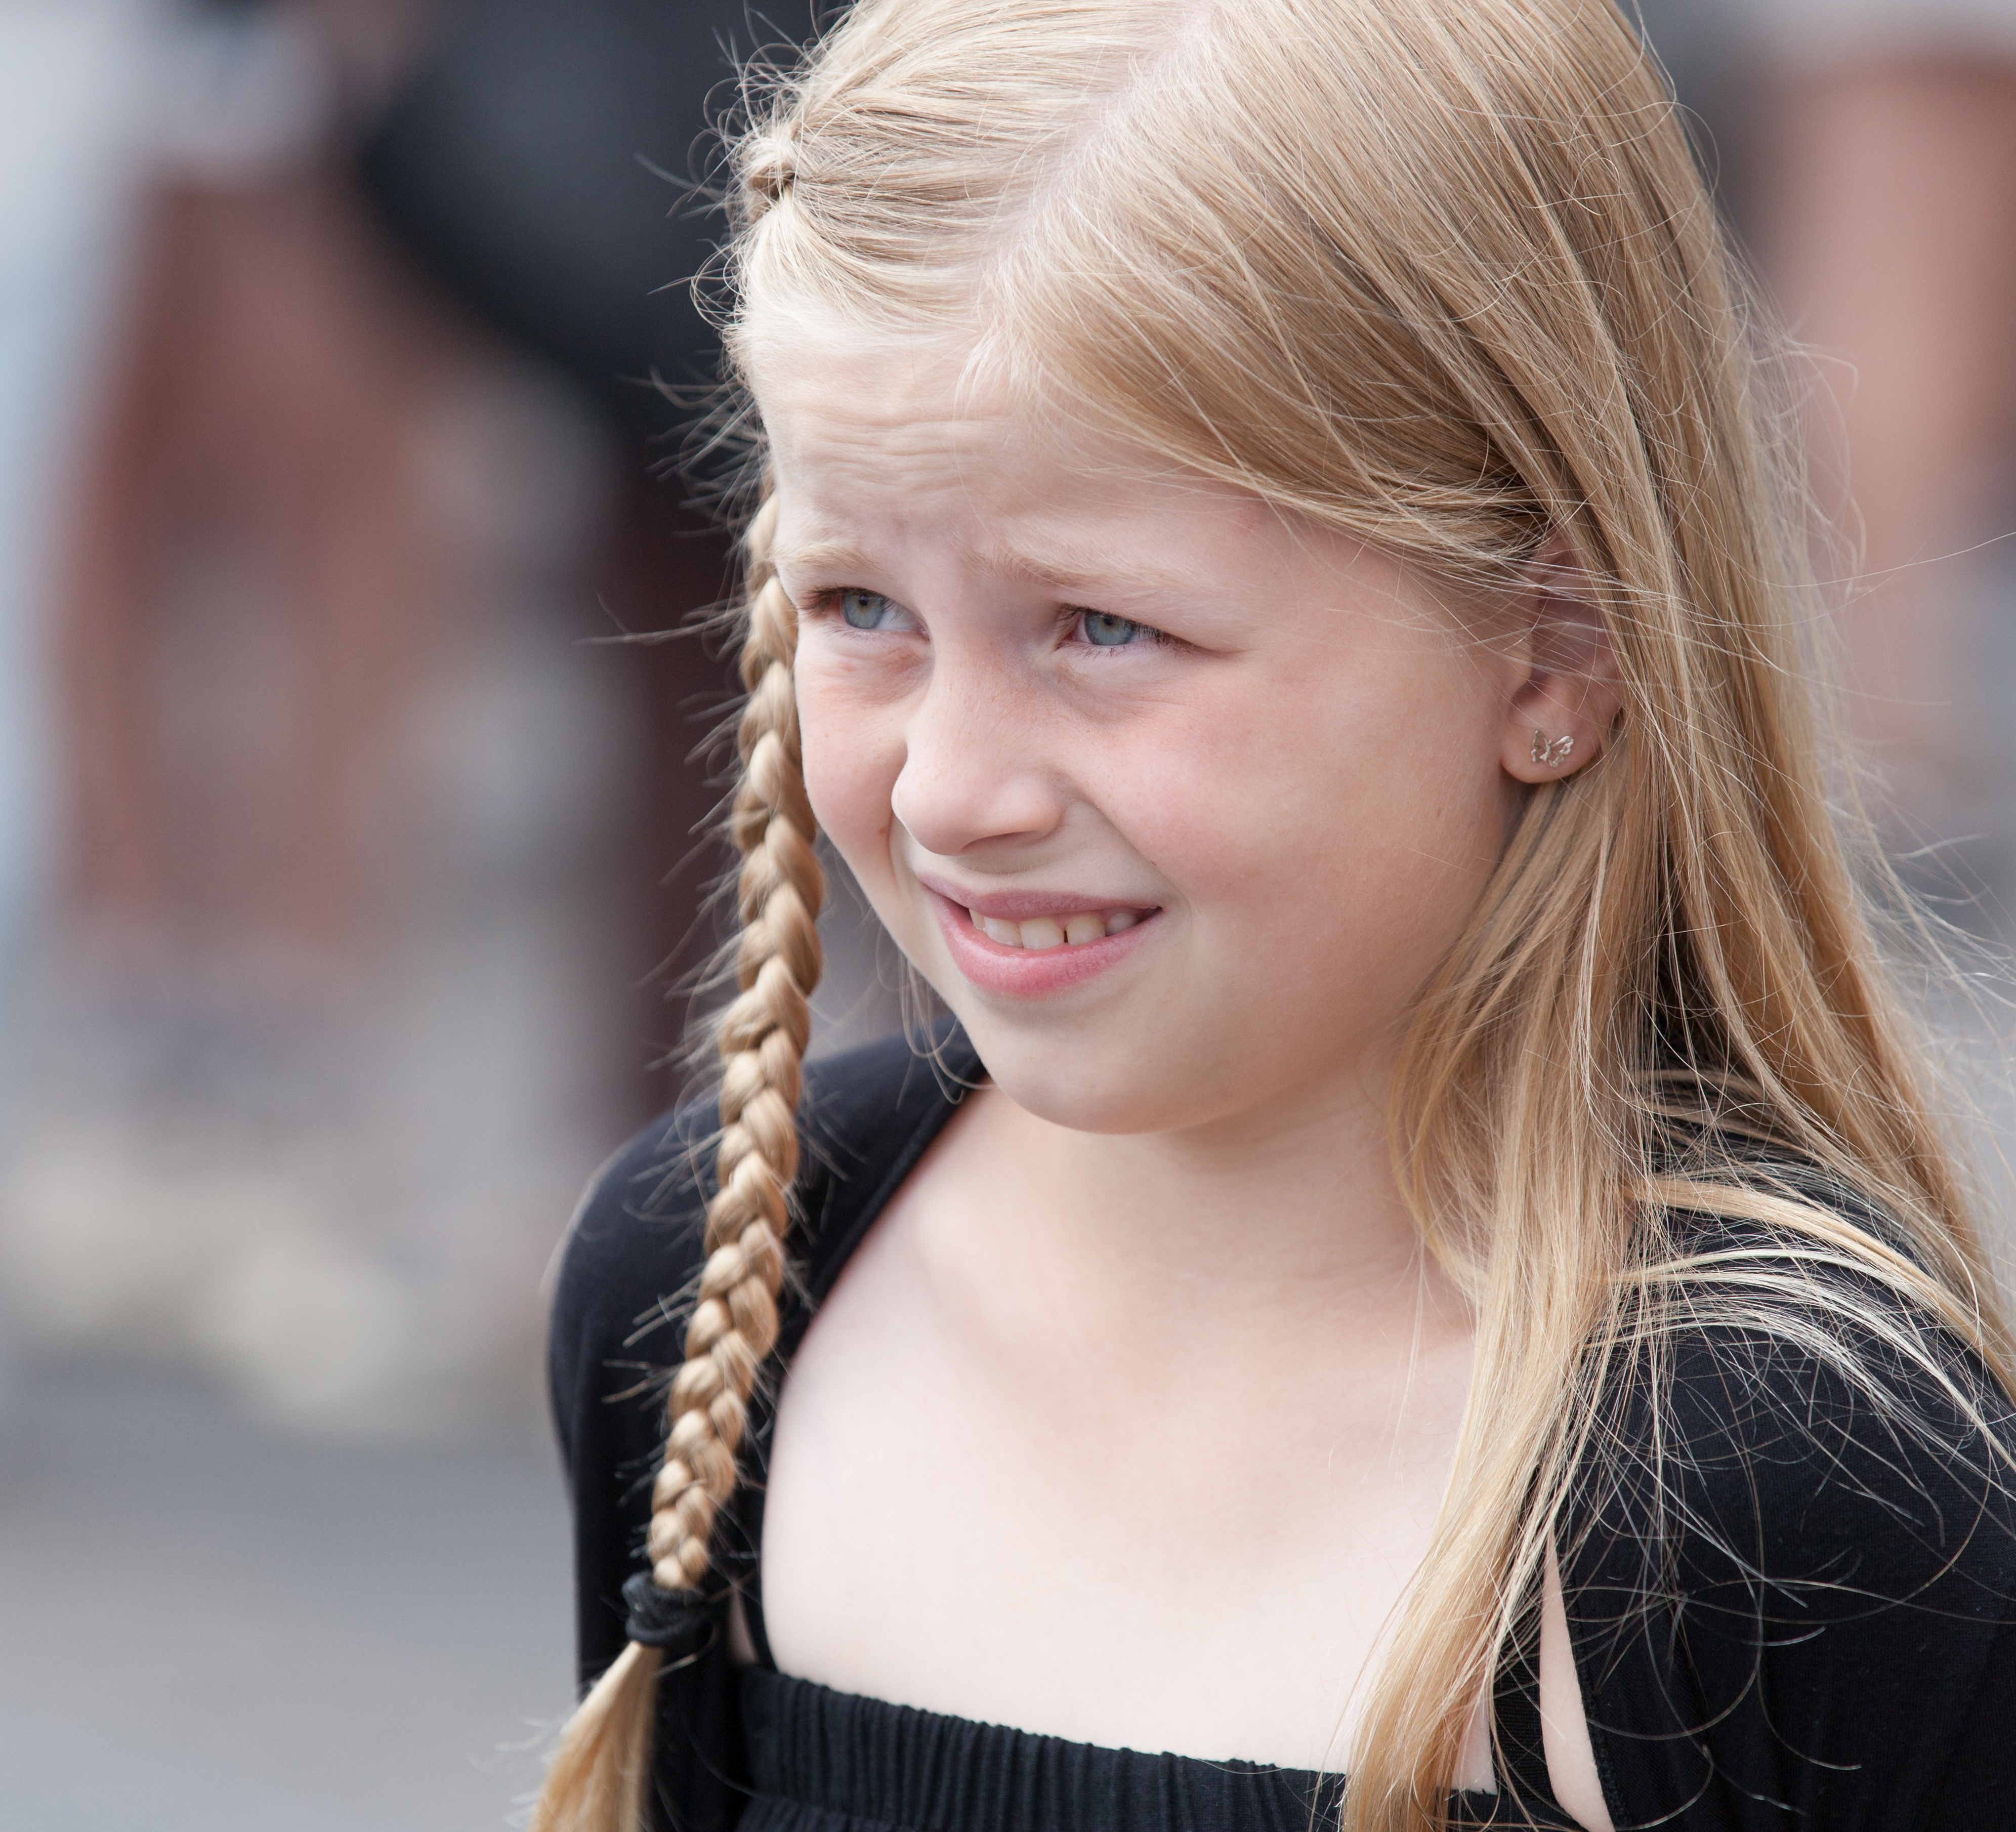 a cute fair-haired child girl in Copenhagen, Denmark, in June 2014, picture 46